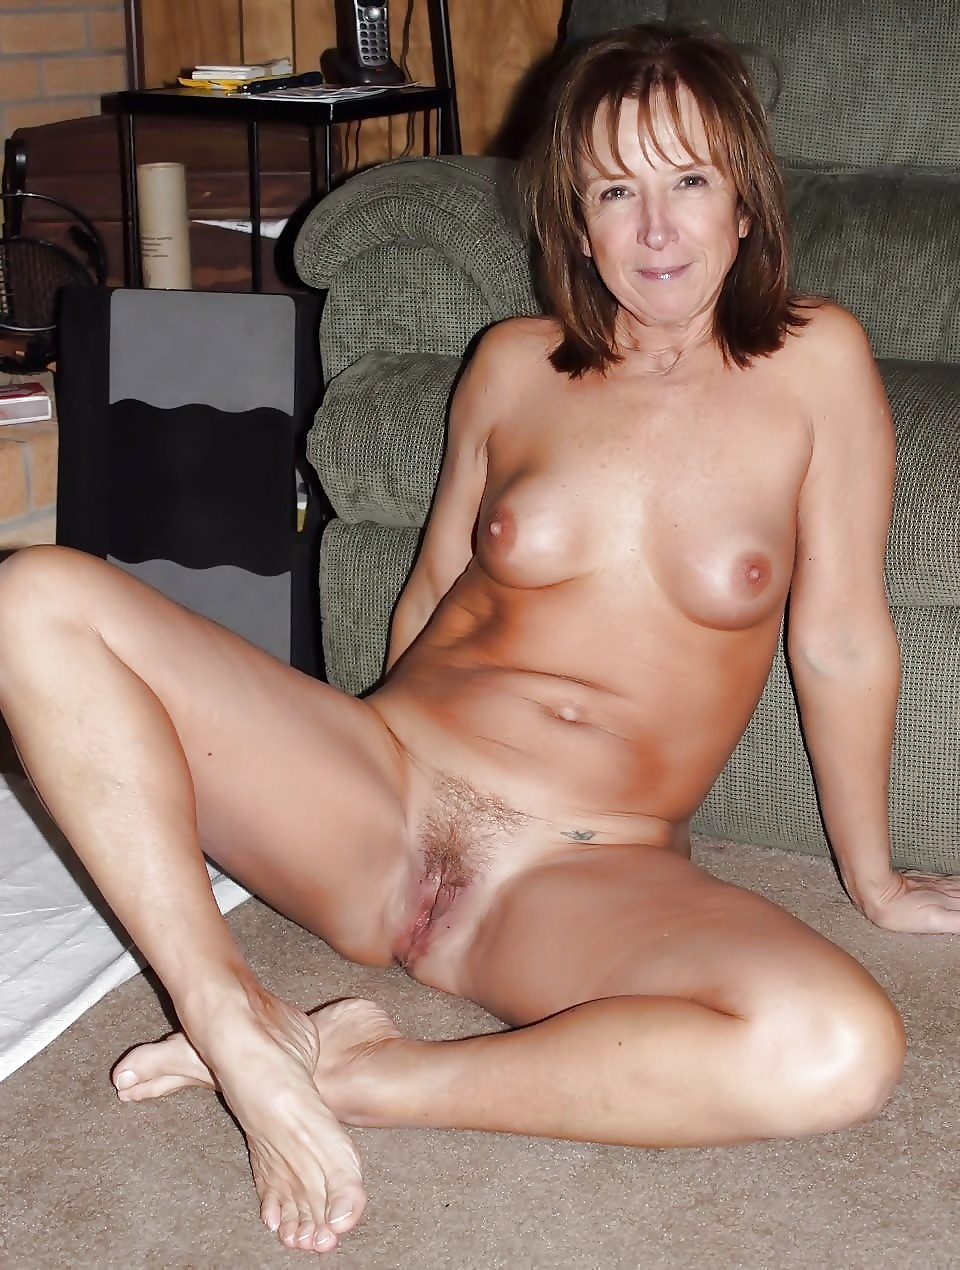 Naked amateur milfs in maryland